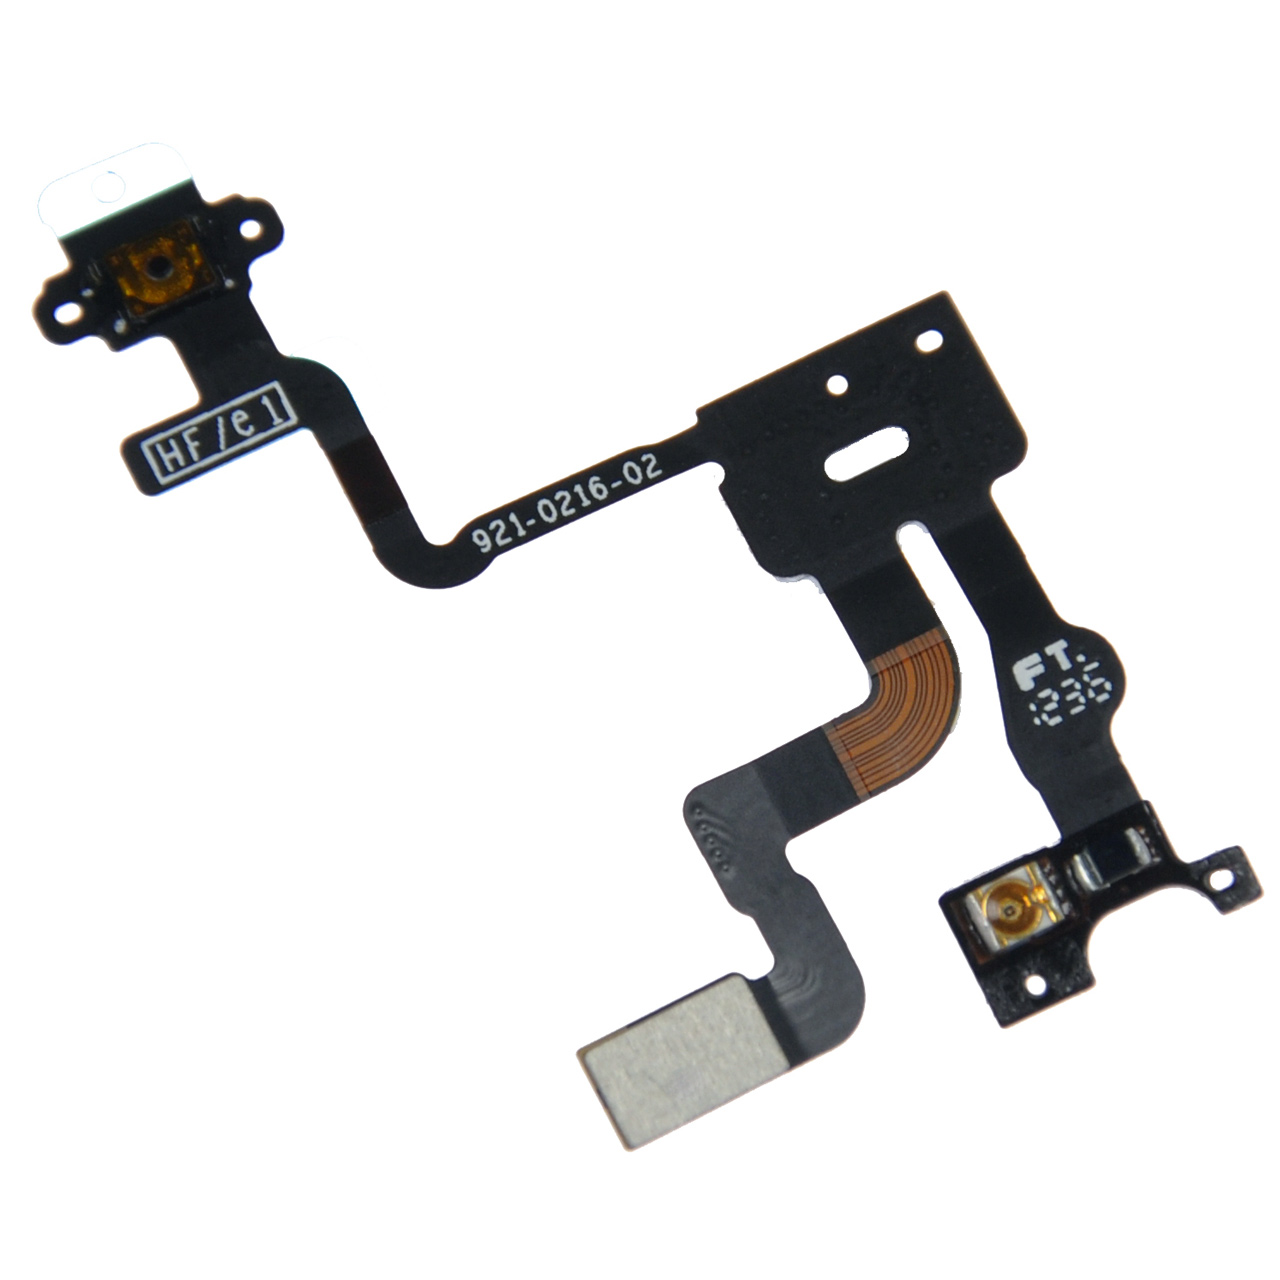 Apple iPhone 4S sensor cable